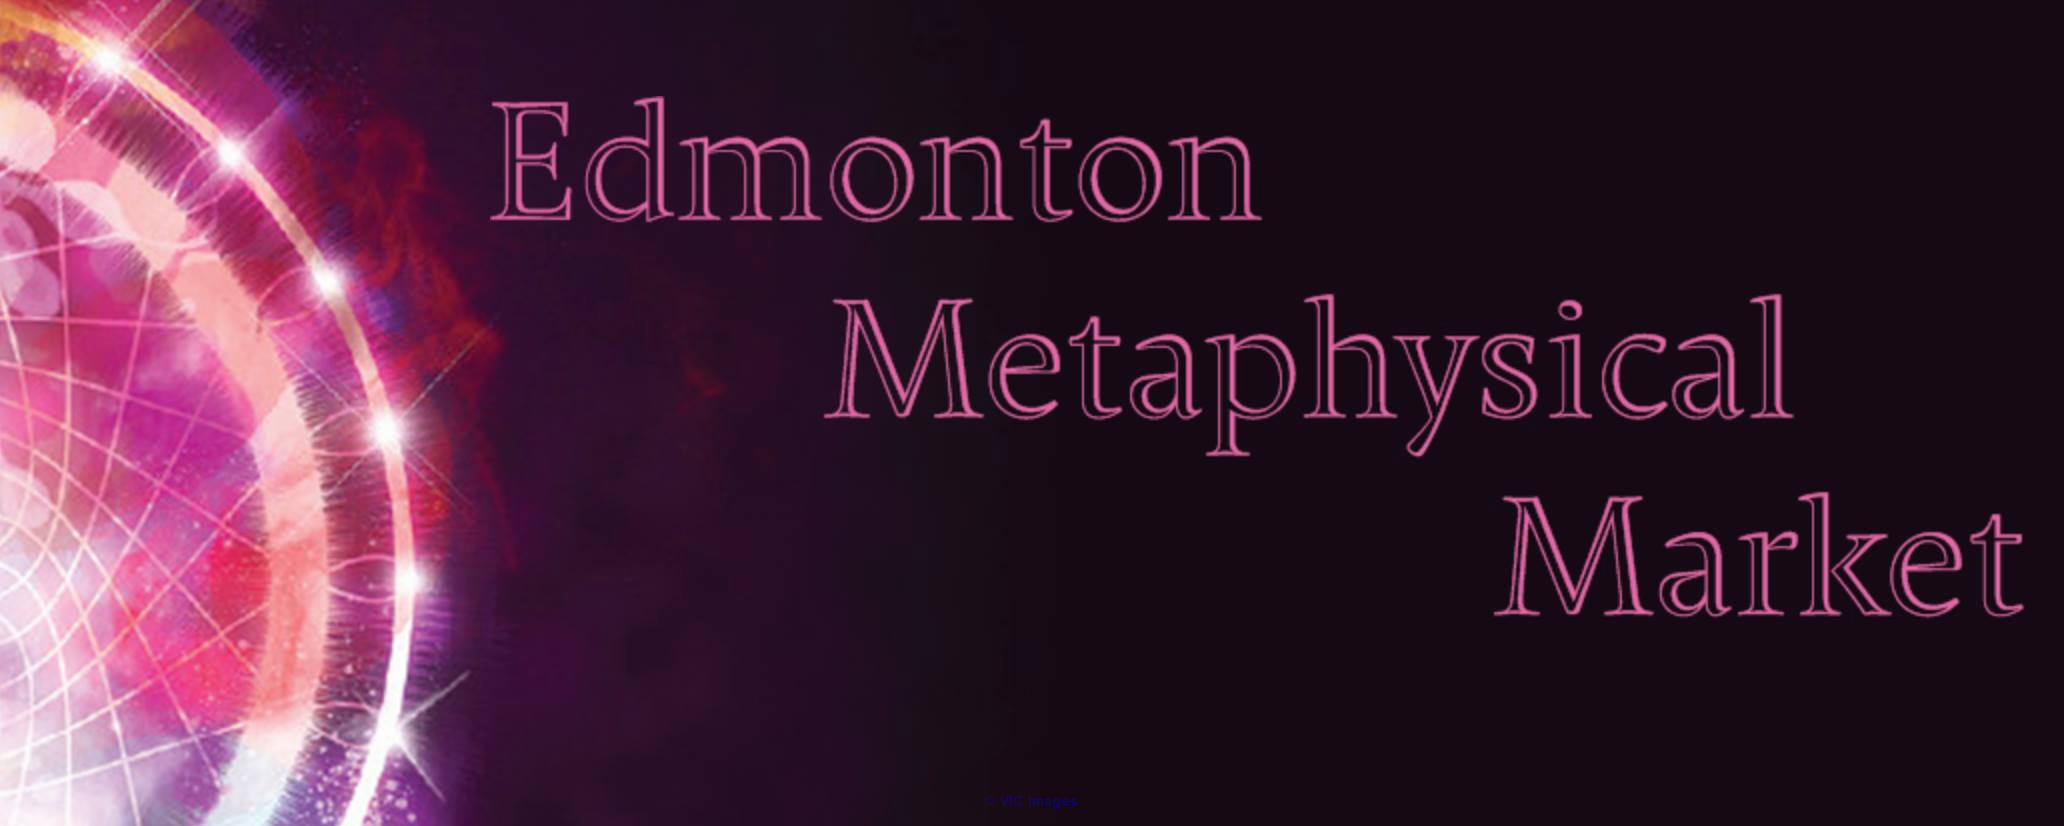 Edmonton Metaphysical market